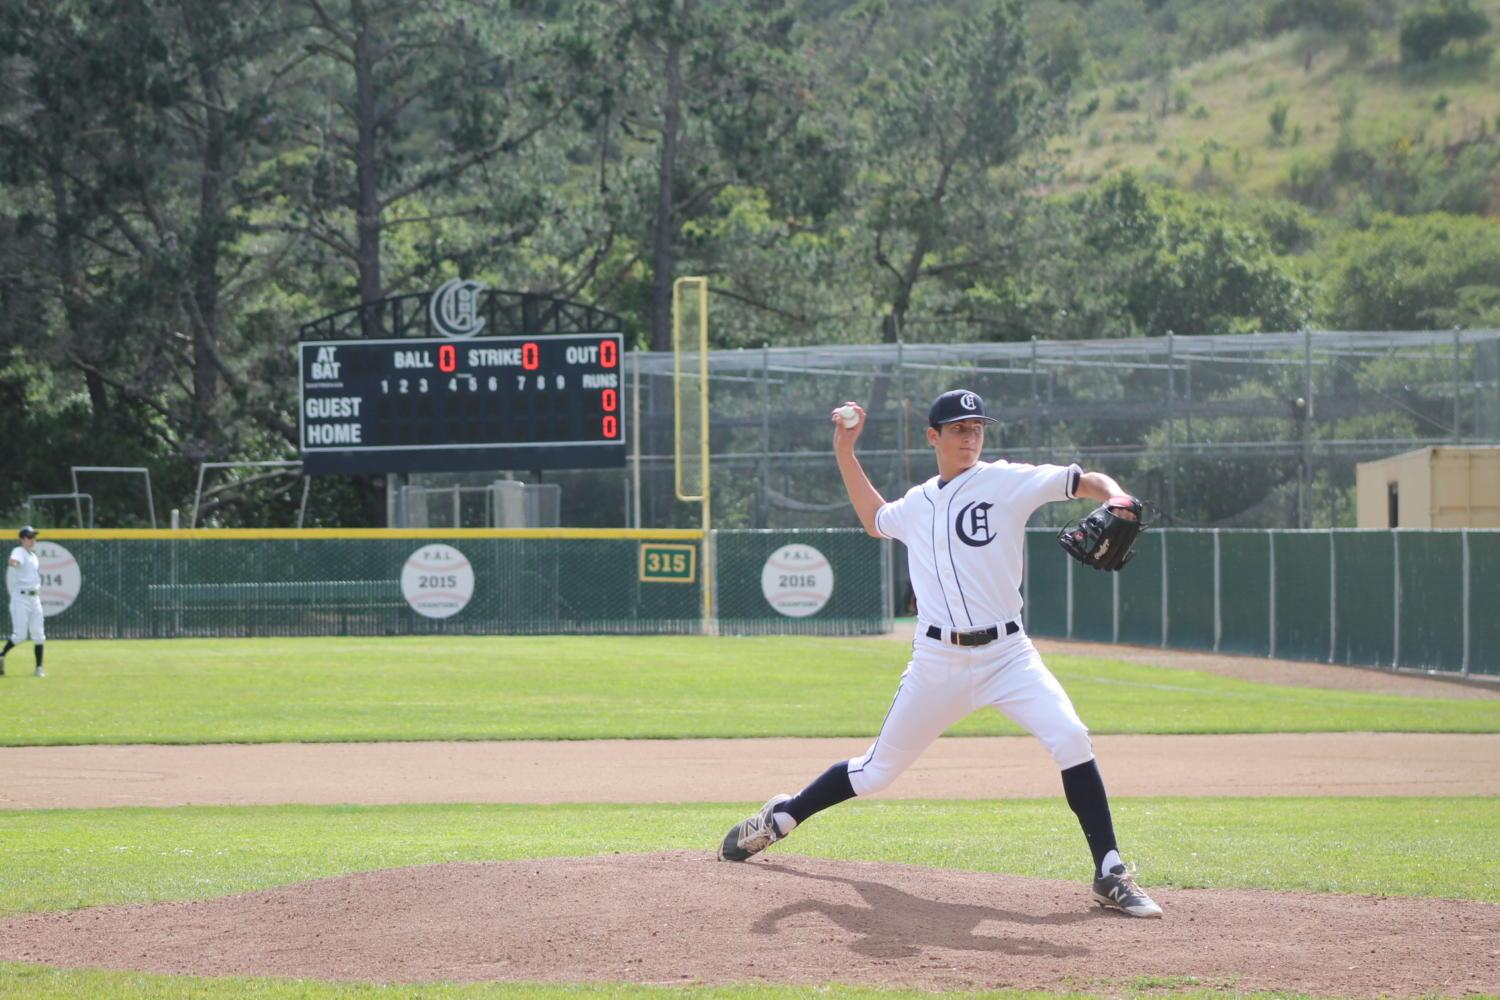 Sophomore David Bedrosian warms up on the mount before the game against Burlingame. Carlmont beat Burlingame 8-3 on April 26. Bedrosian would pitch for 5 innings and contribute to many of Carlmont's points with his hits.